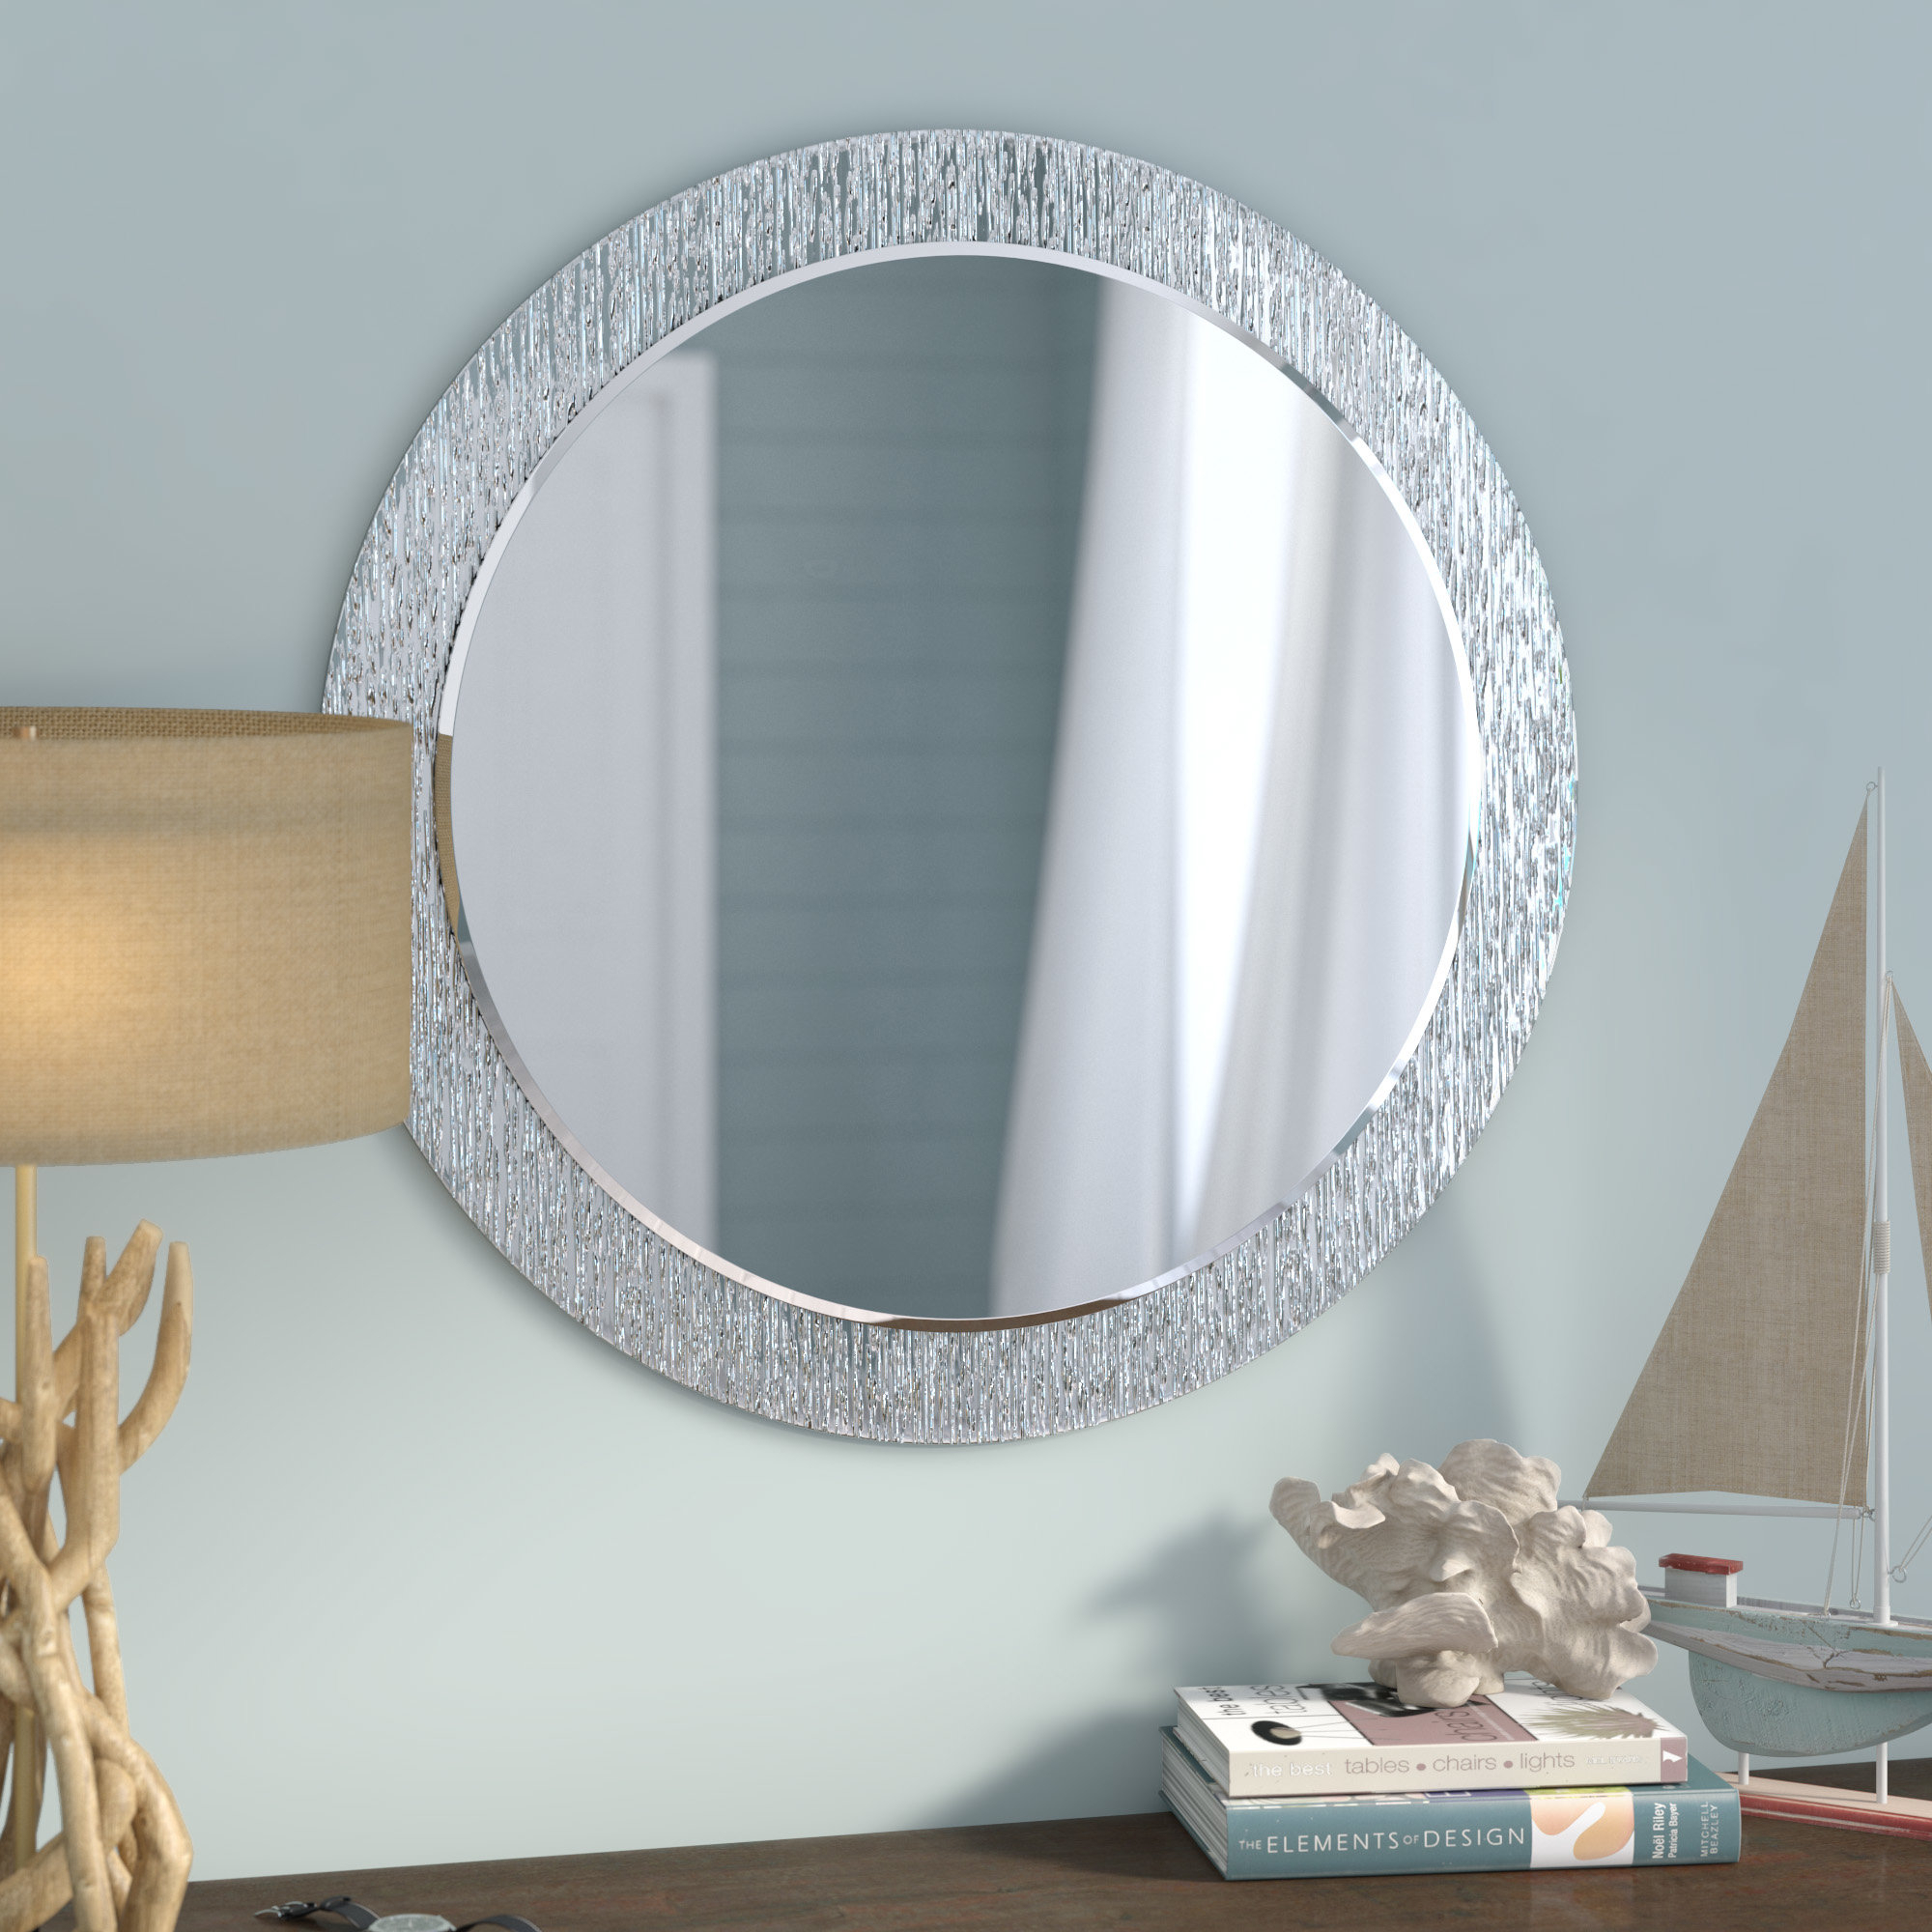 Beachcrest Home Point Reyes Molten Round Wall Mirror With Tata Openwork Round Wall Mirrors (Image 4 of 20)